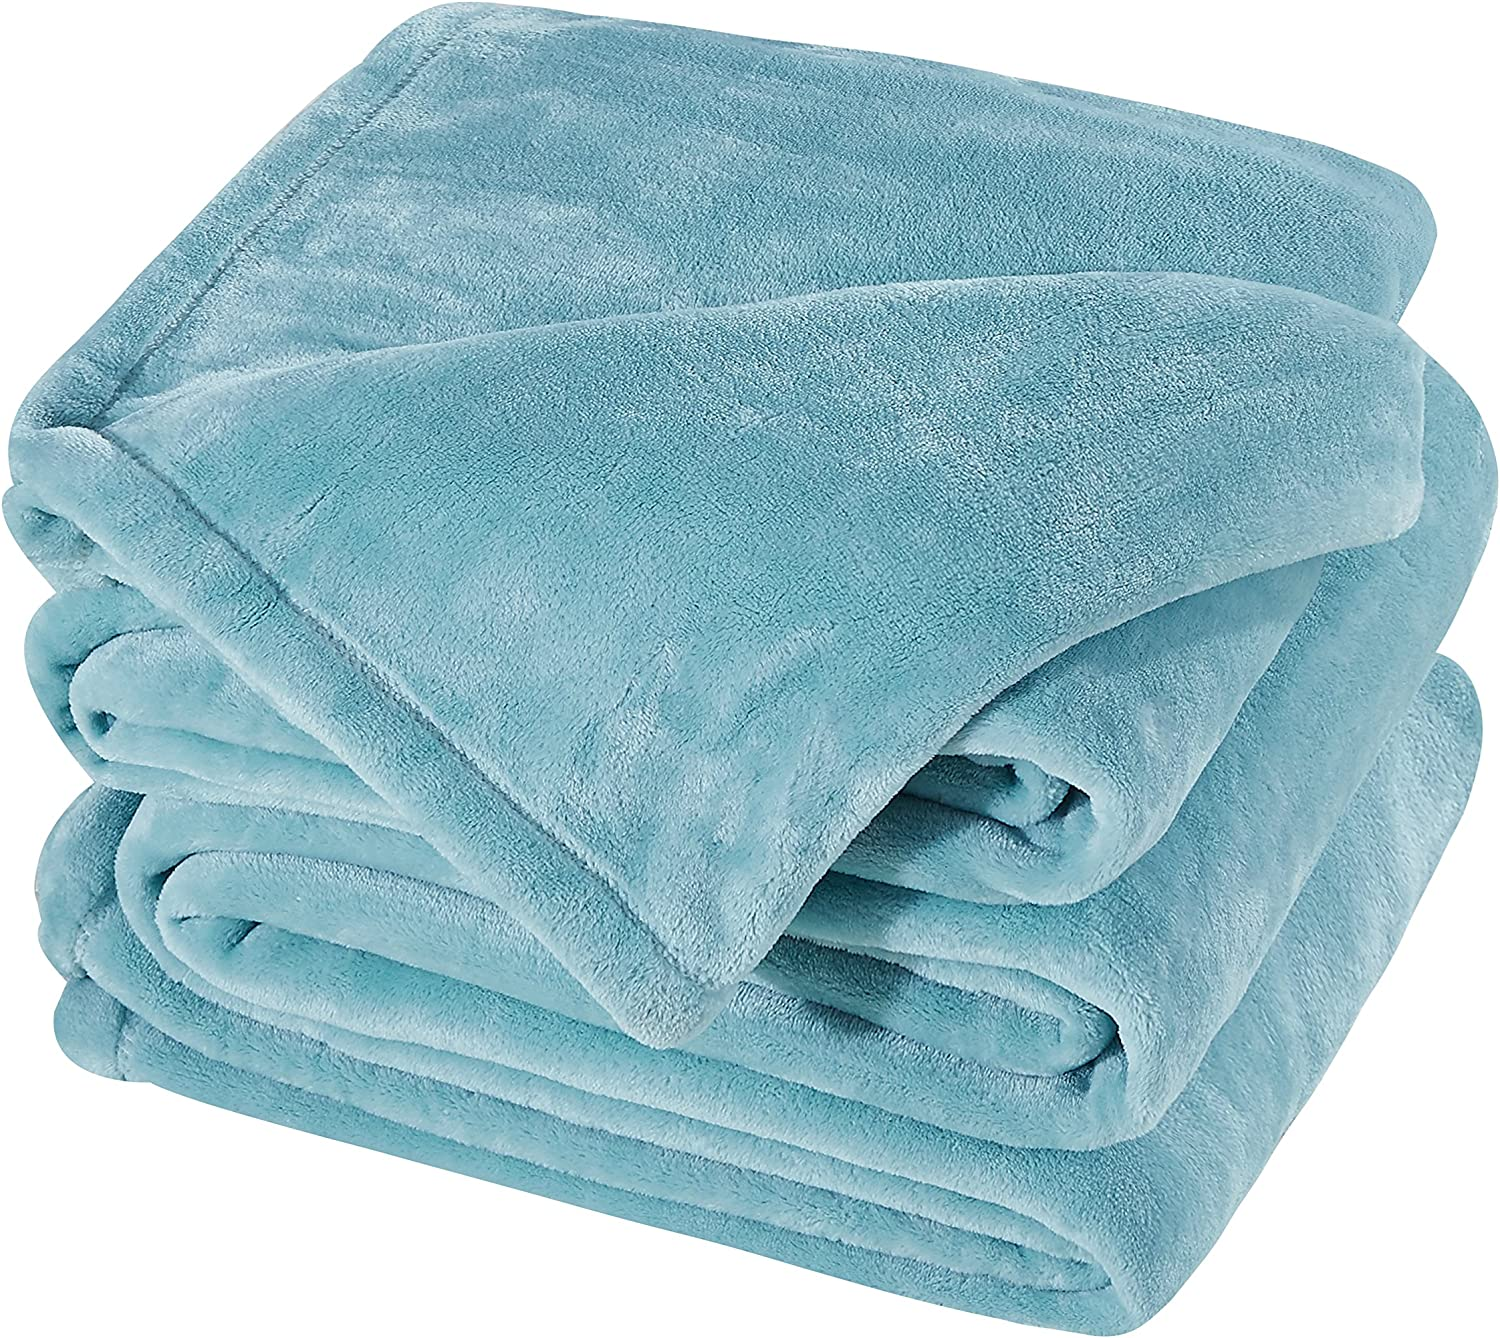 SONORO KATE Fleece Blankets All Season 350GSM - Premium Lightweight Throw for Bed Extra Soft Brush Fabric Warm Sofa Queen Size(Turquoise, Queen)